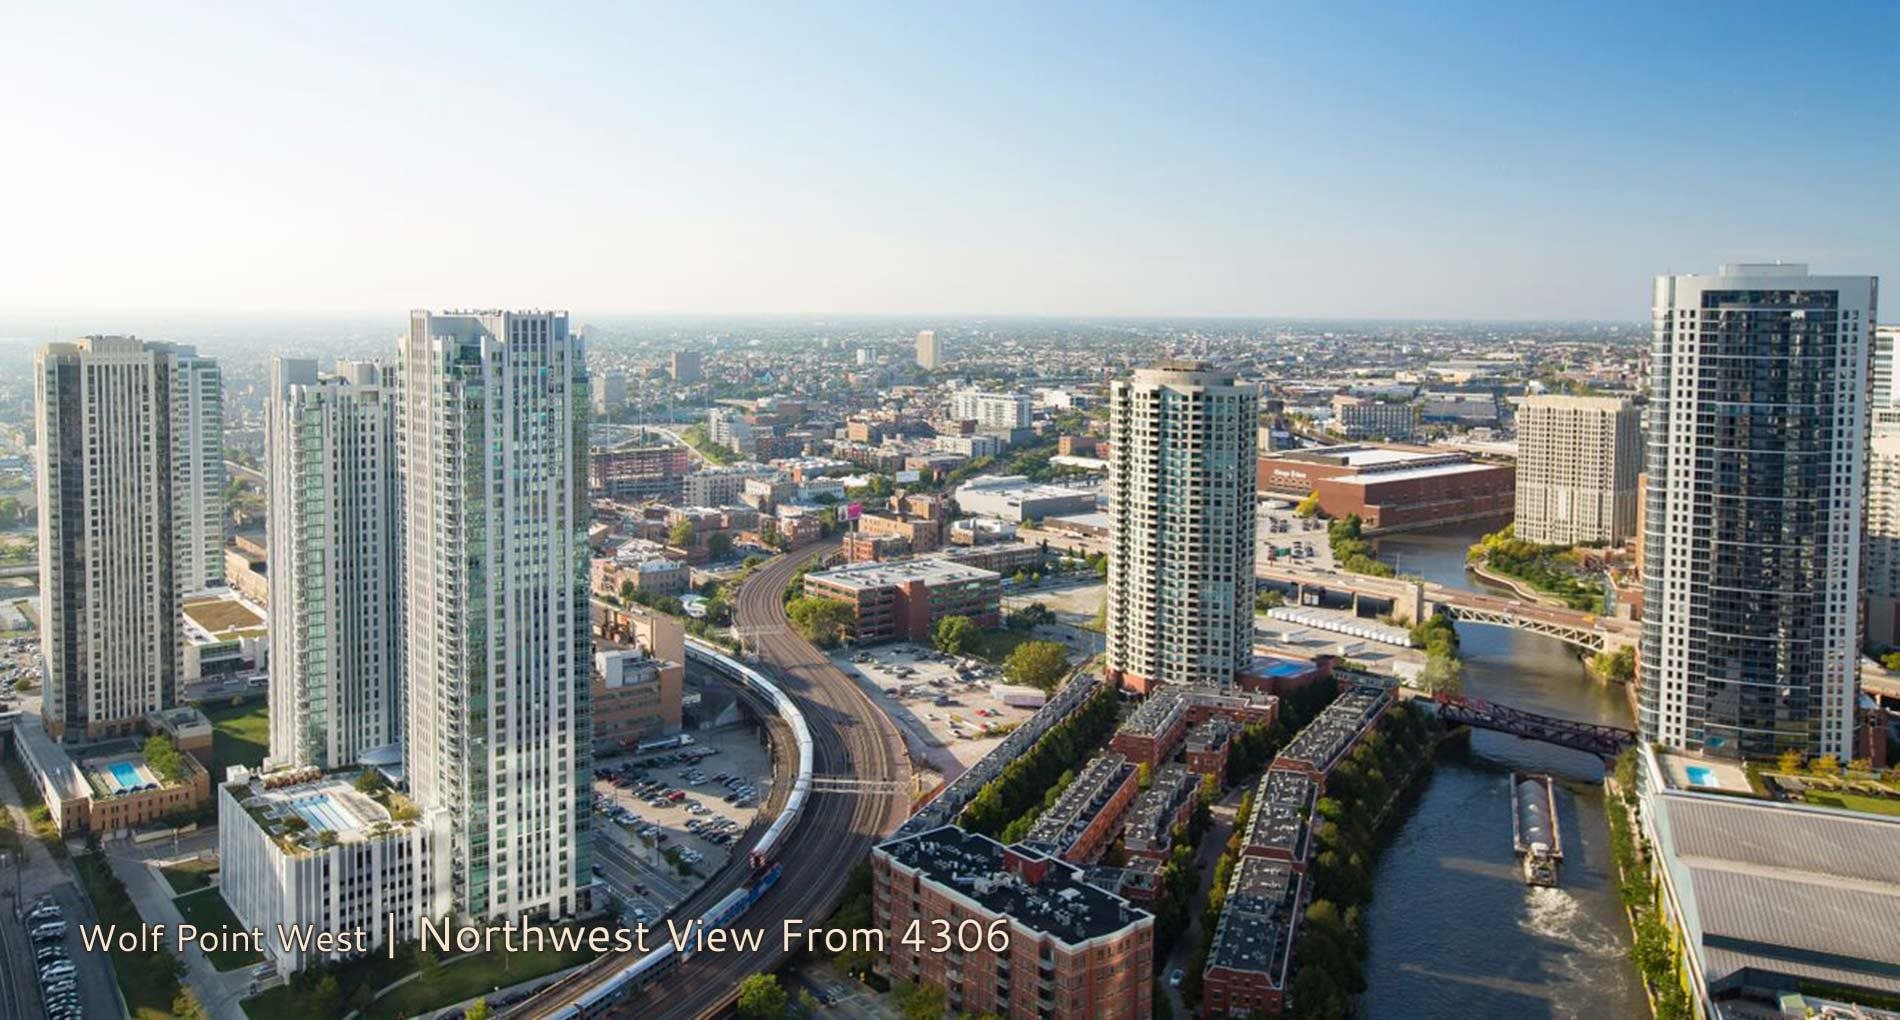 Wolf Point West | Northwest View From 4306